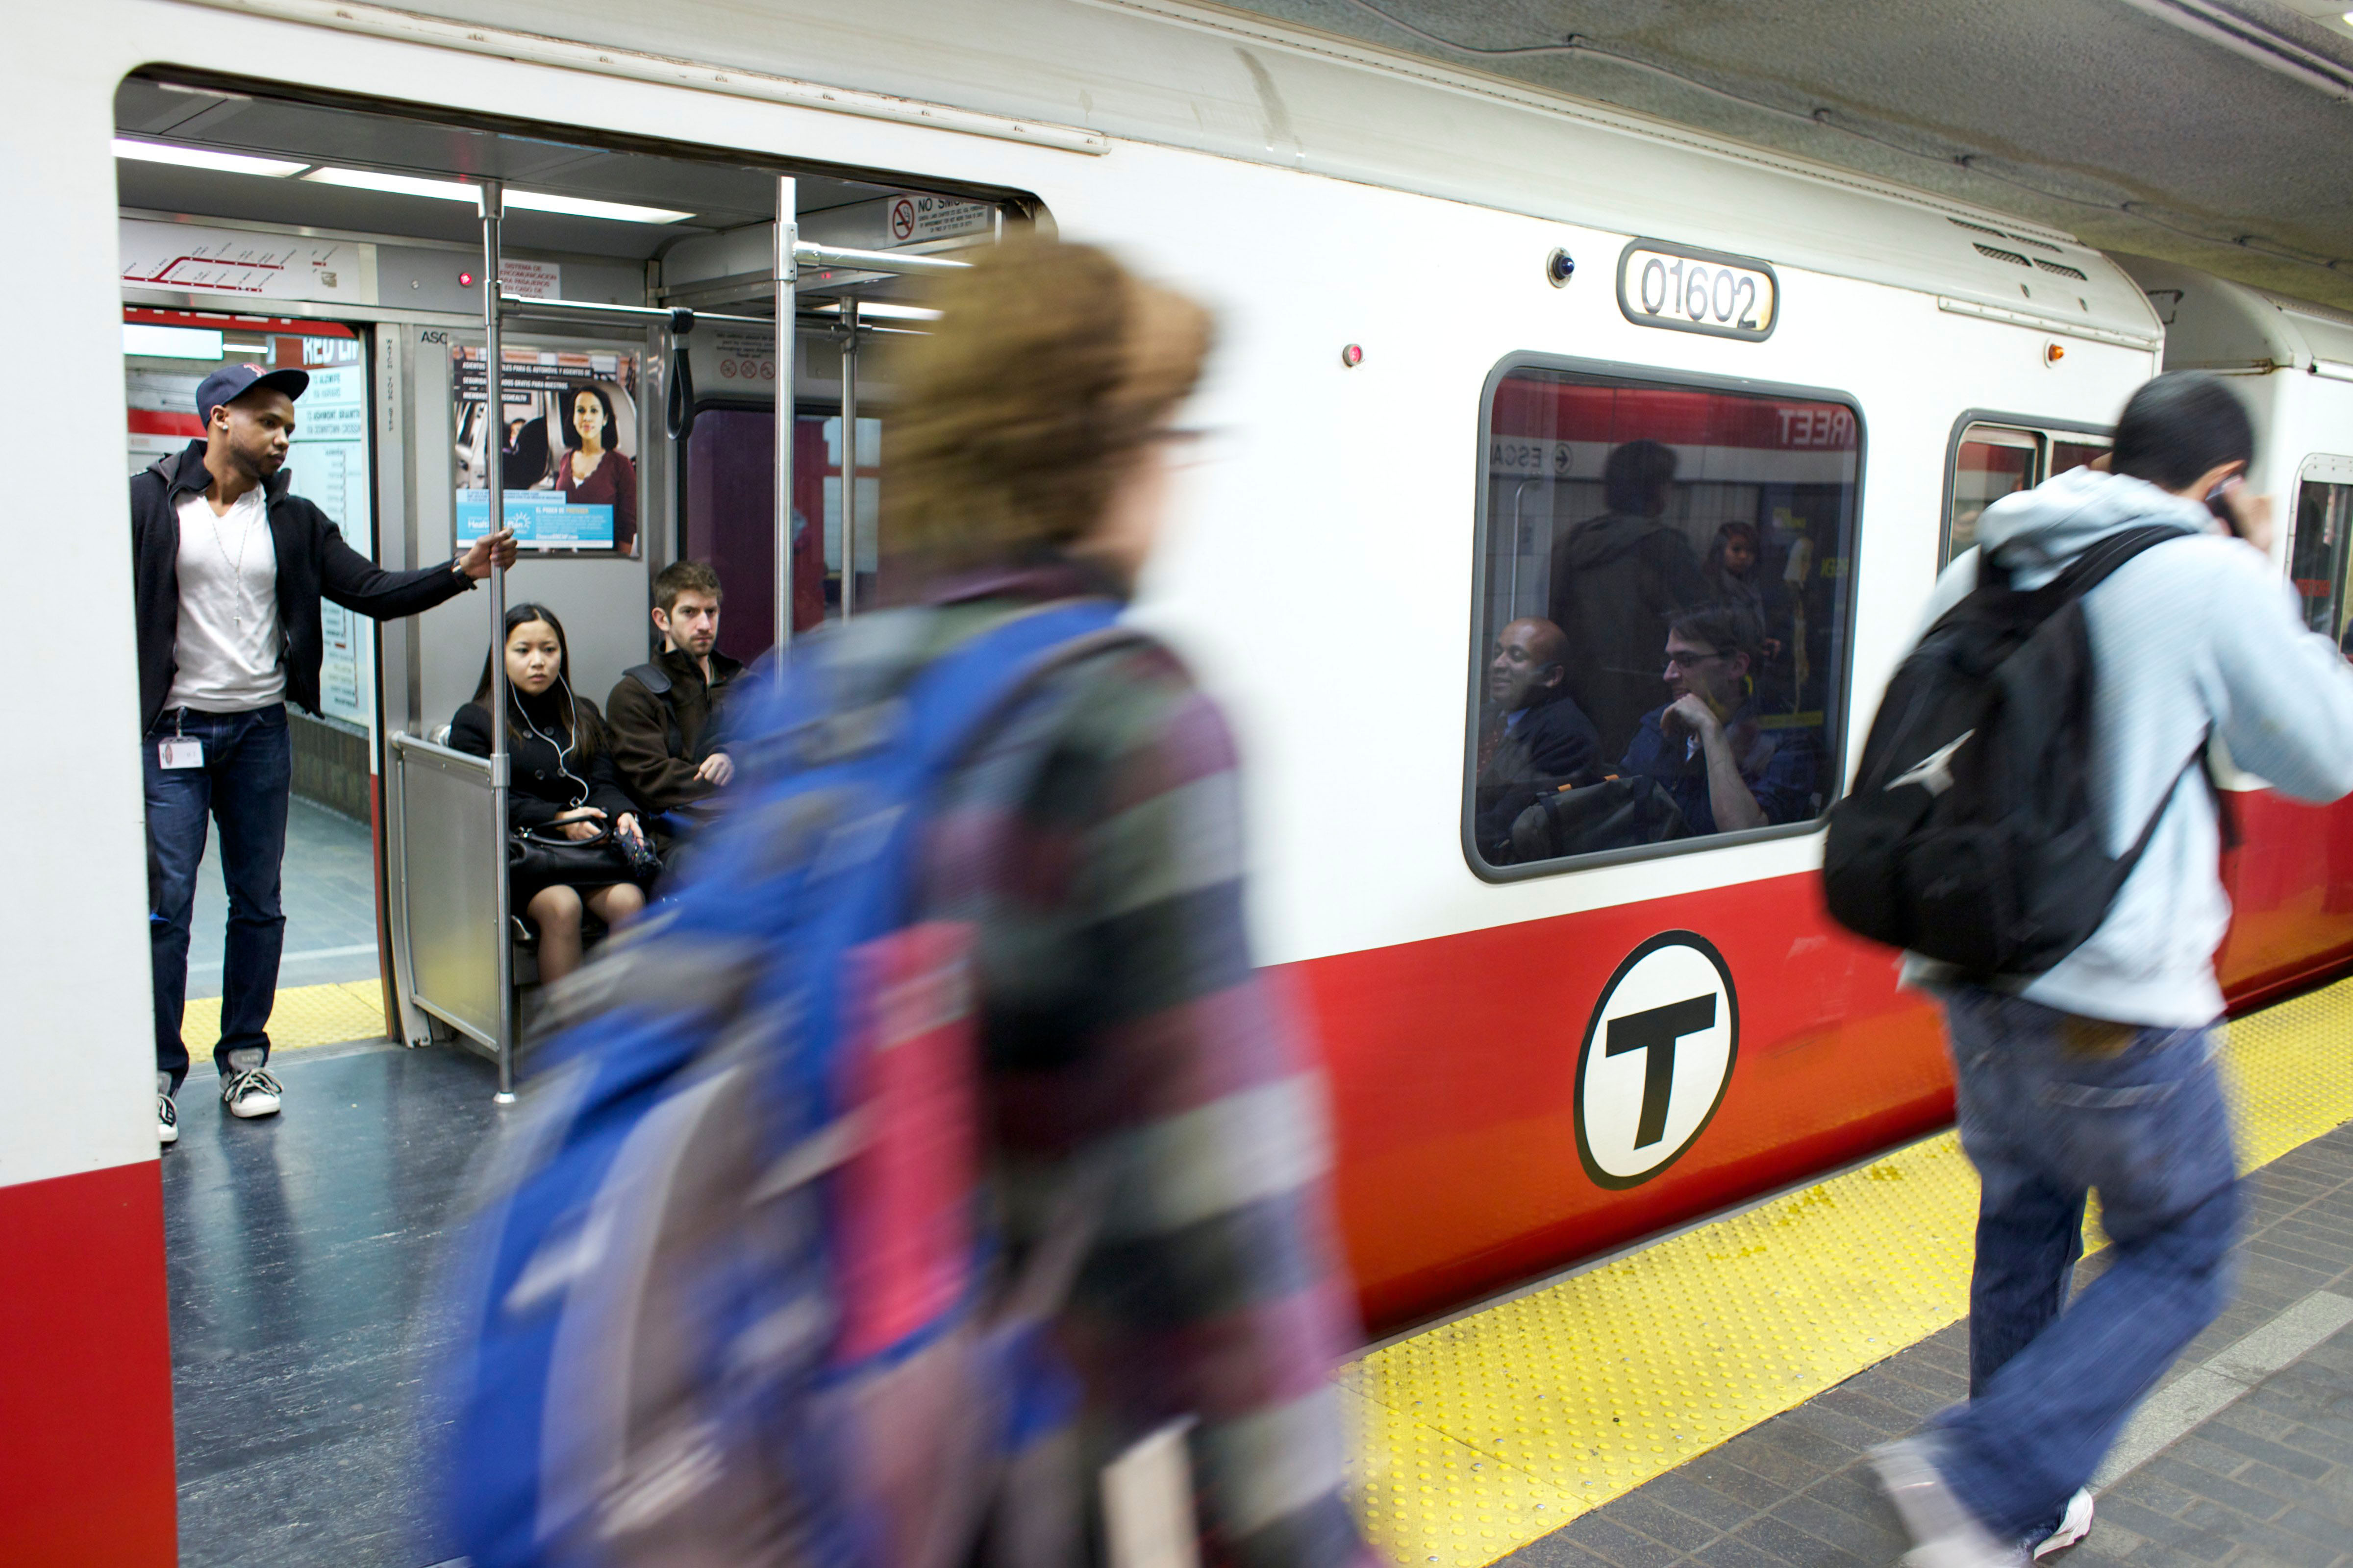 Top bid to build new MBTA subway cars is from China - The